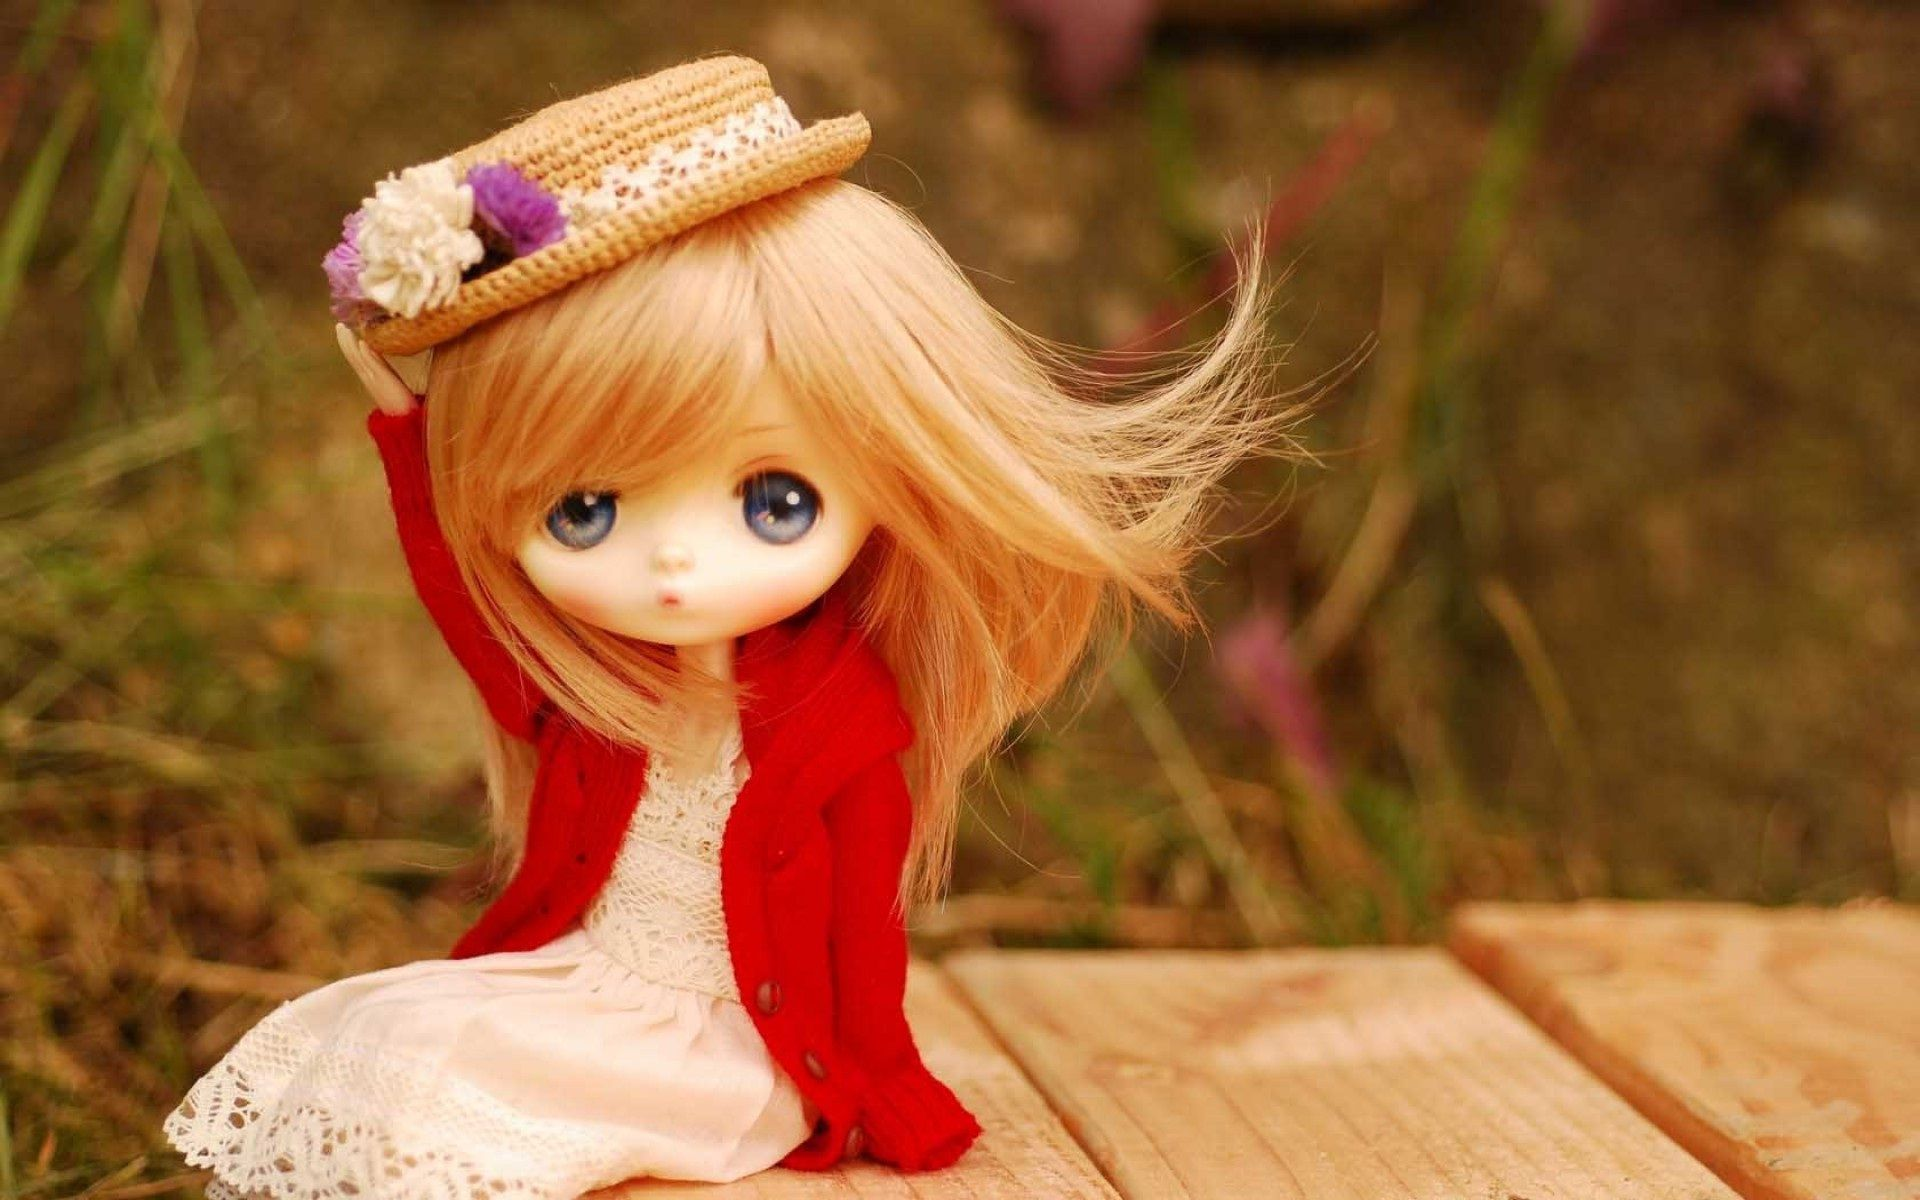 HD Animated Cute Hat Doll Red Sweater Wallpapers   Anime - Model    Pinterest   Dolls, Wallpaper free download and Wallpaper